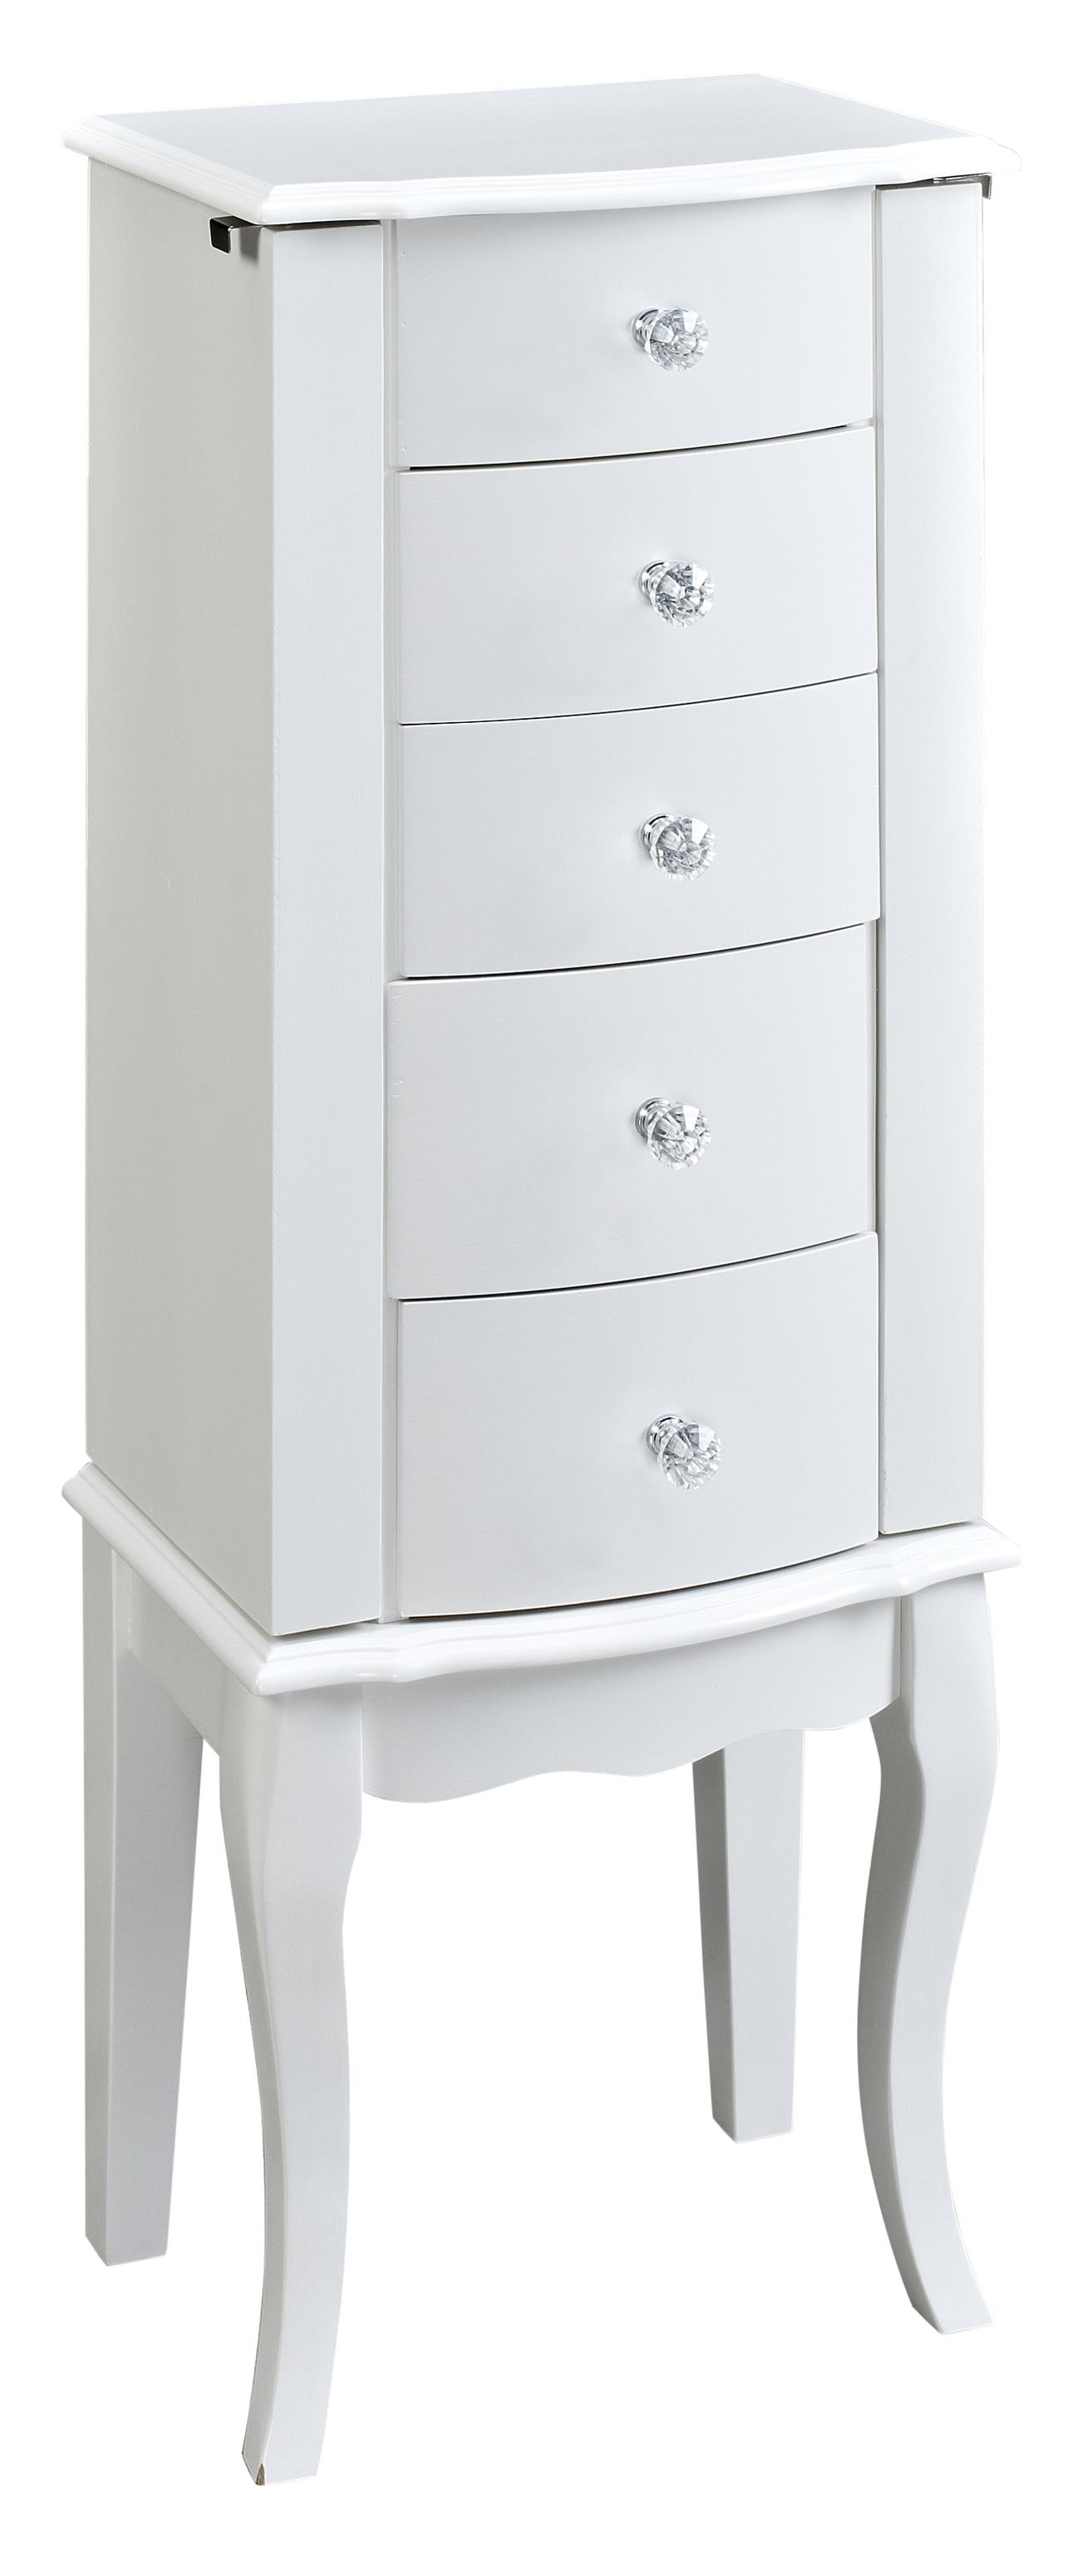 Jewelry Armoire Jewelry Armoire by Powell at HomeWorld Furniture